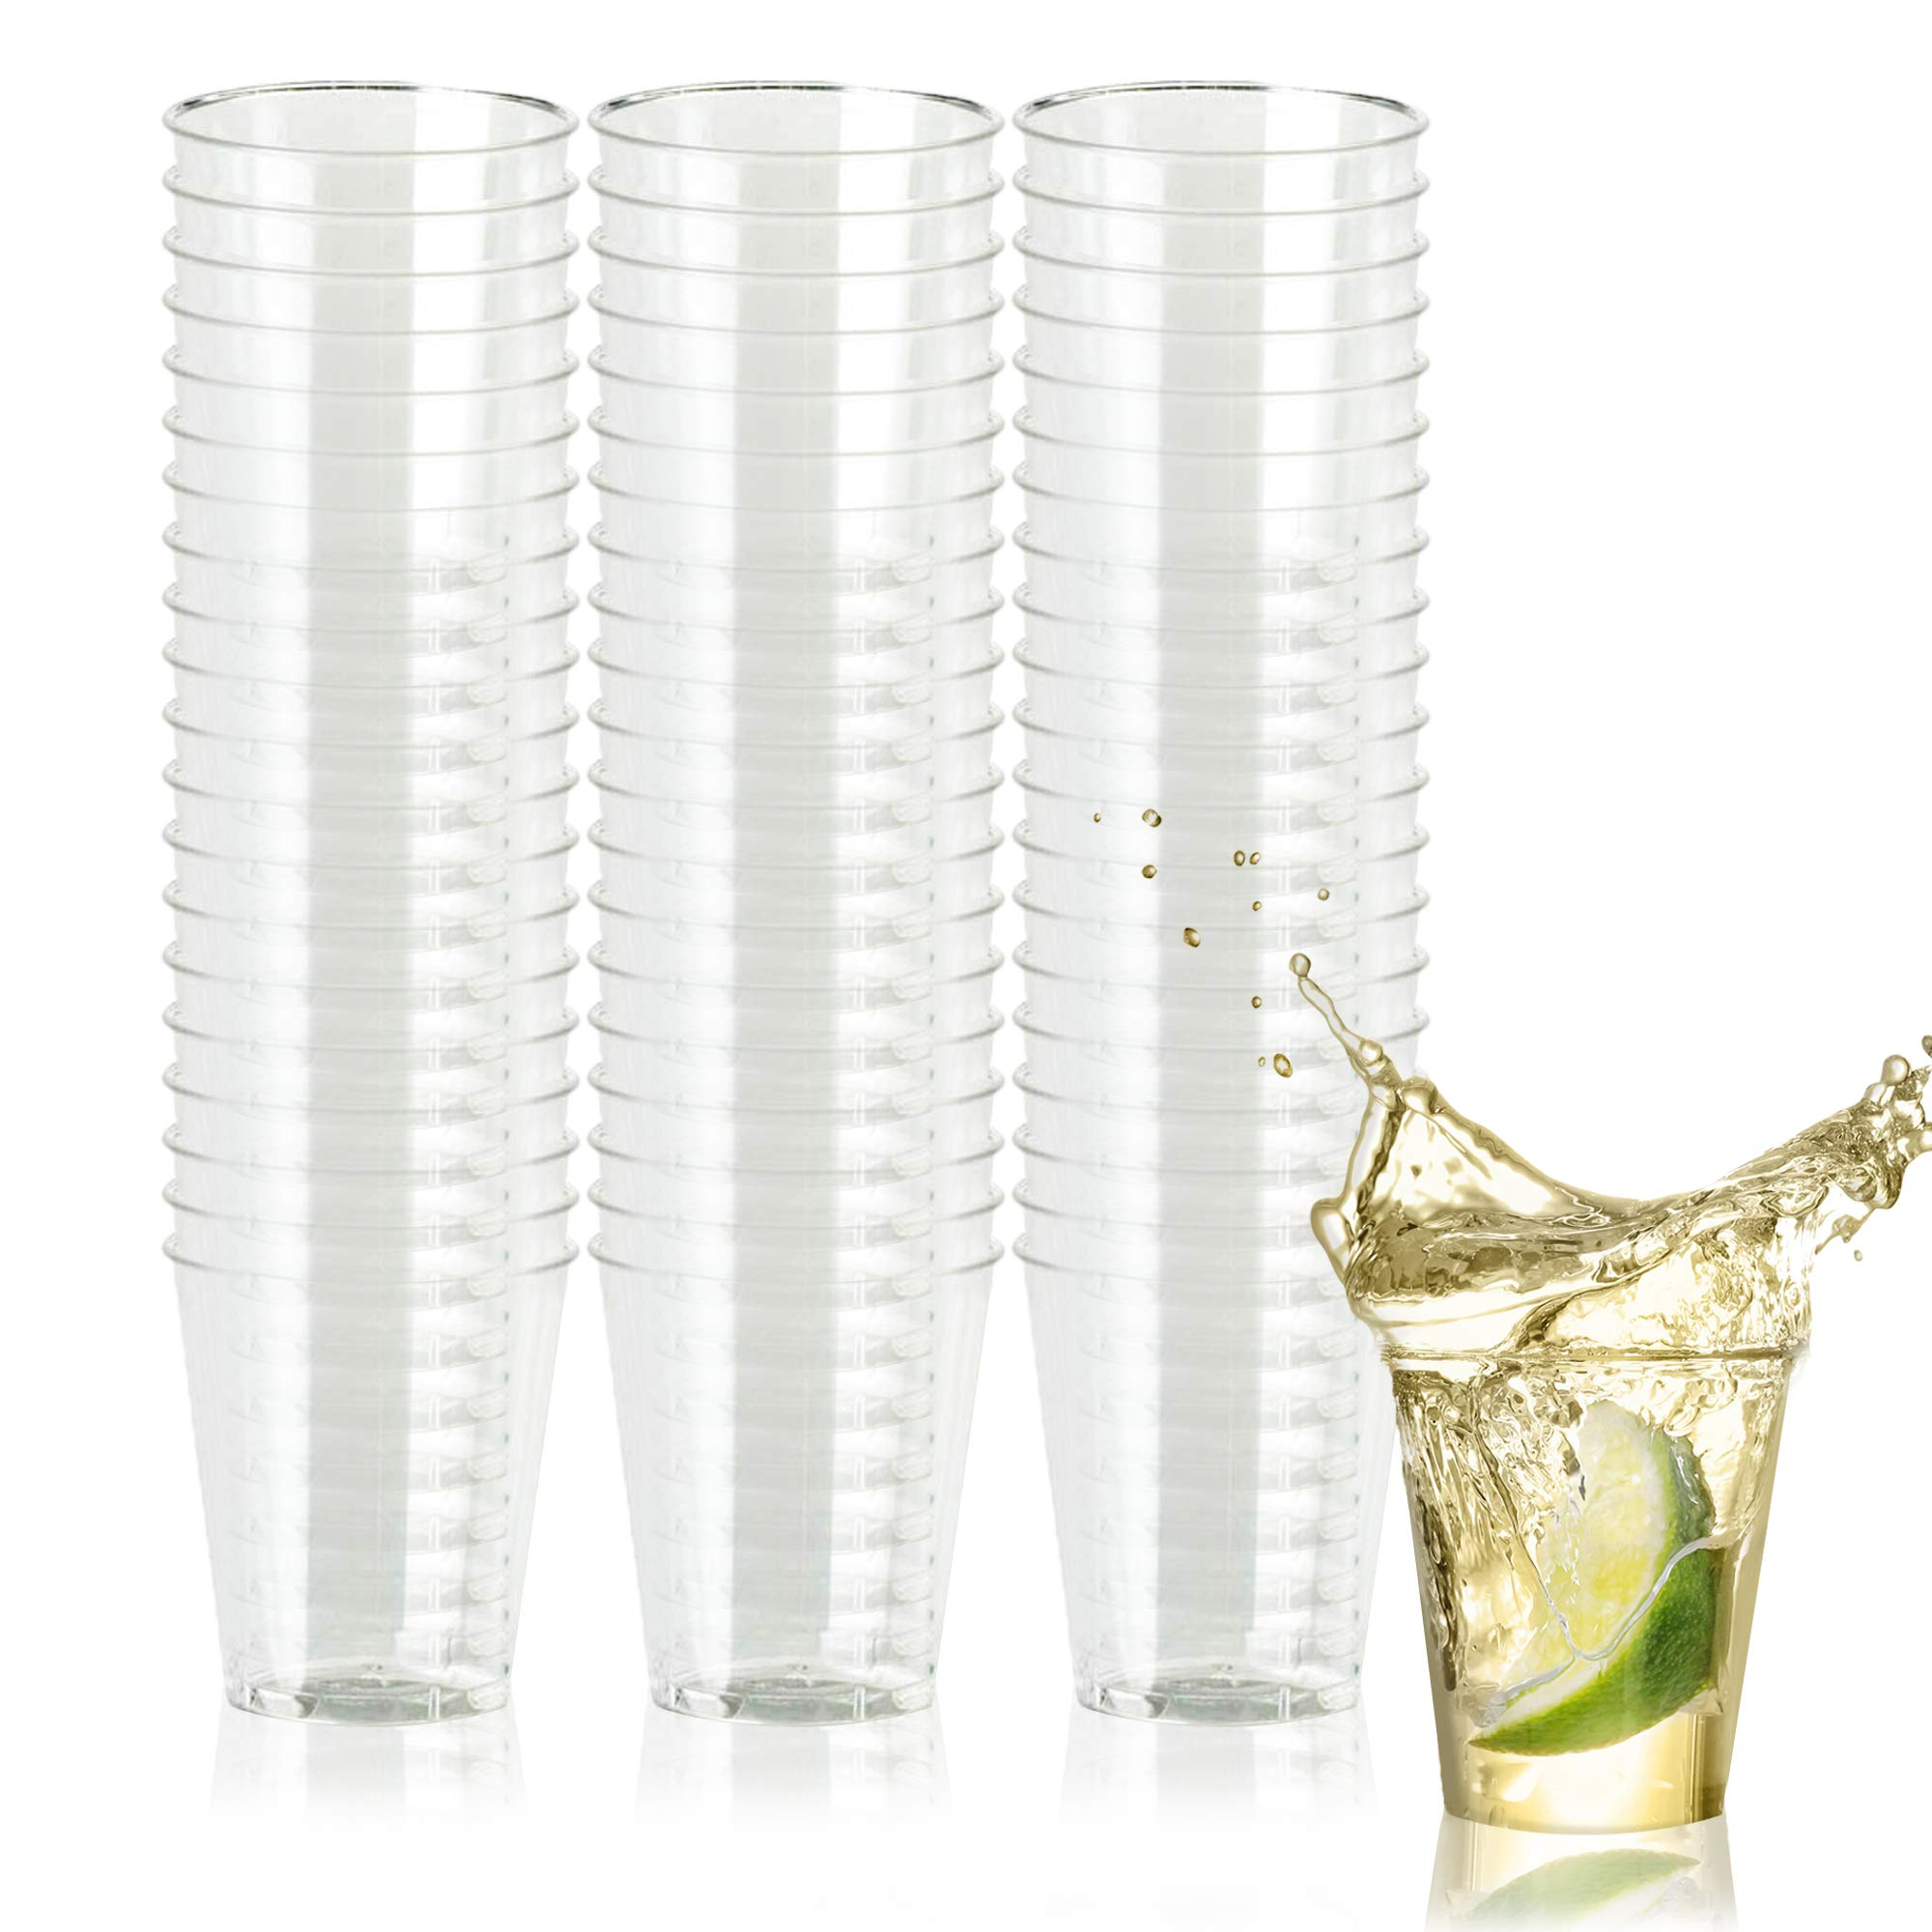 500 Disposable Hard Plastic Shot Glasses, 1oz(30ml) - Crystal Clear, Heavy Duty, Shatterproof & Reusable Shot Cups - for Shots, Vodka Jelly, Weddings, Dinners, Christmas, New Year - 100% Recyclable by Matana